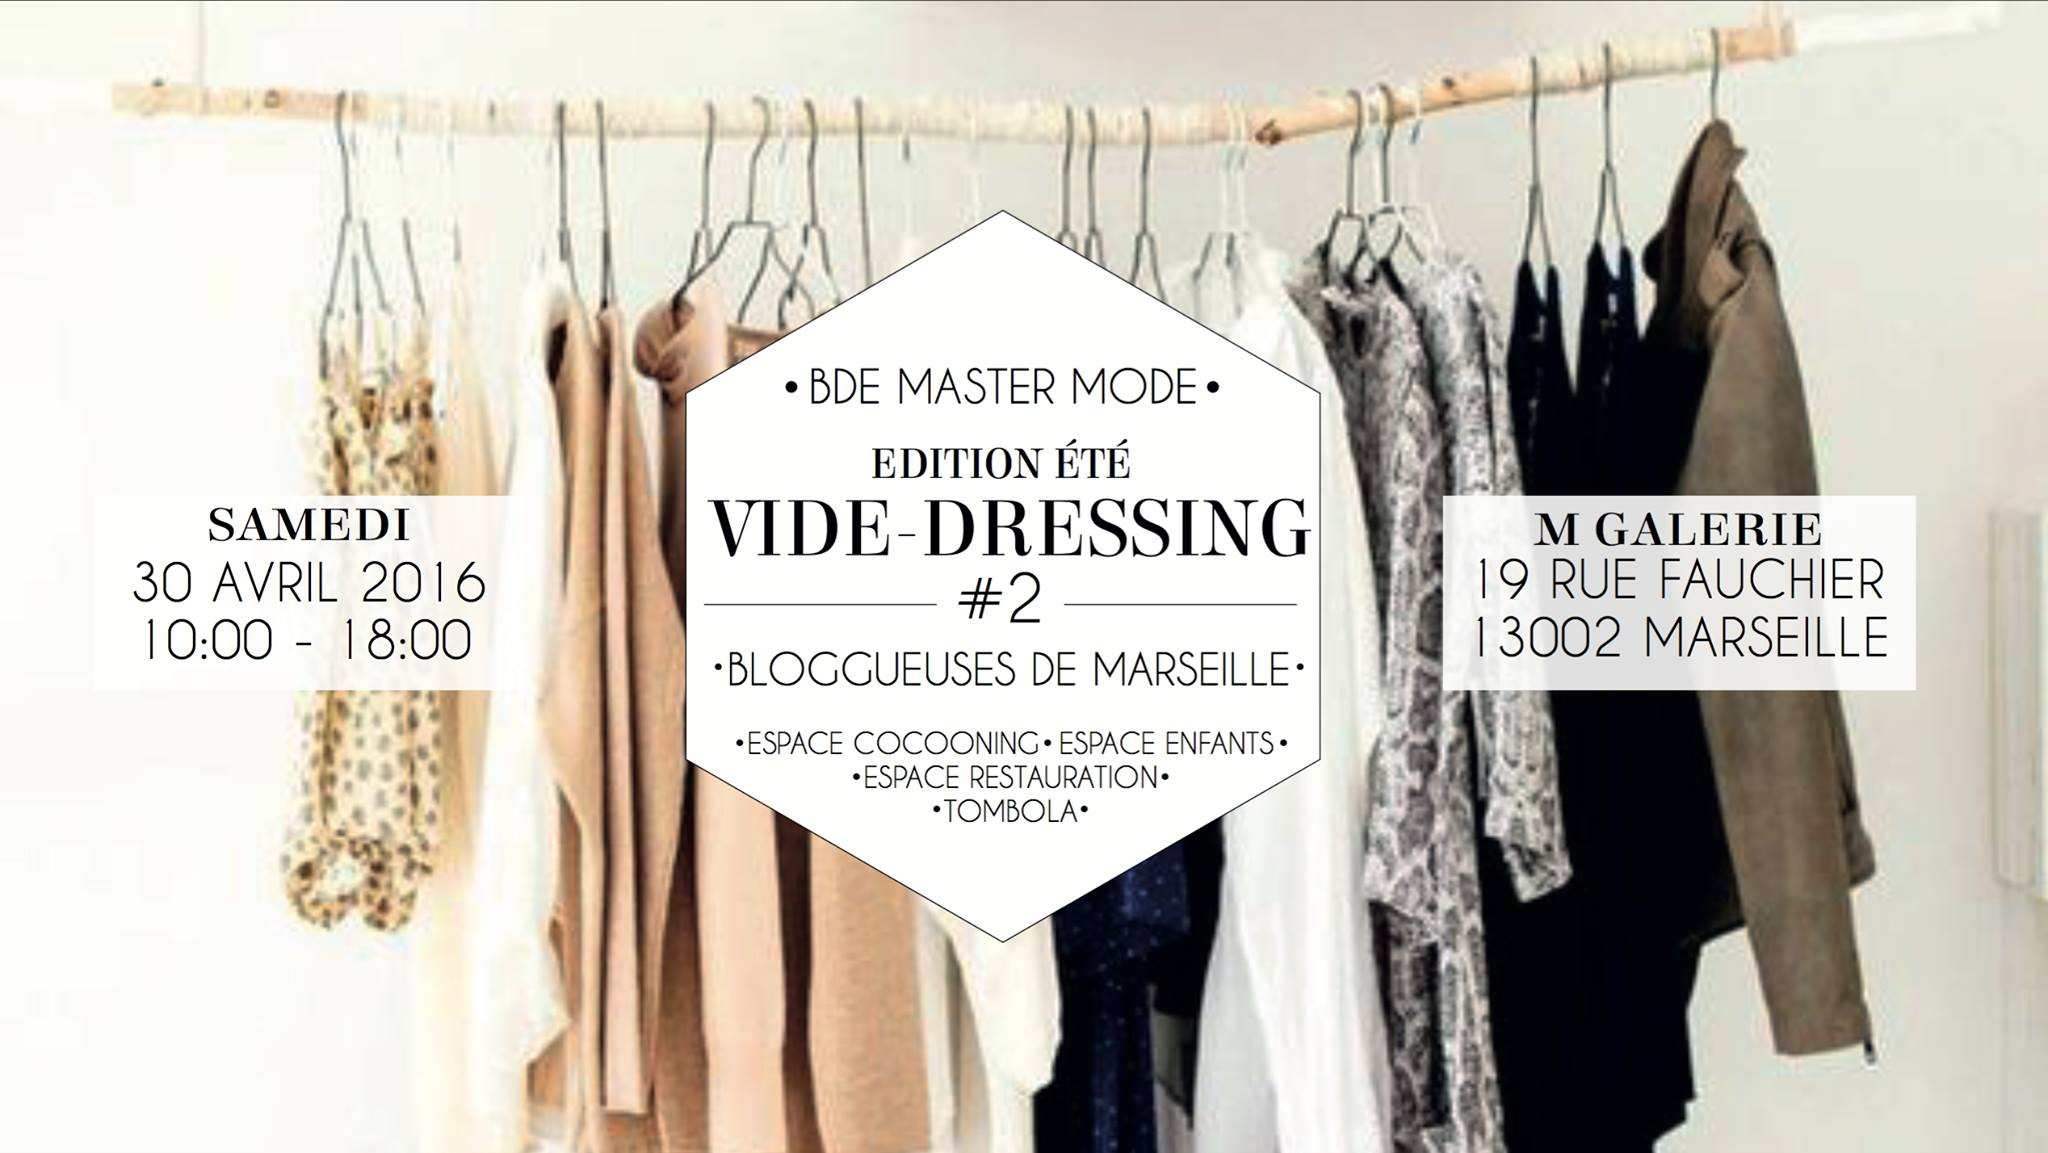 bon plan edition ete vide dressing 2 le so girly blog With plan maison 5 pieces 15 bon plan edition ete vide dressing 2 le so girly blog